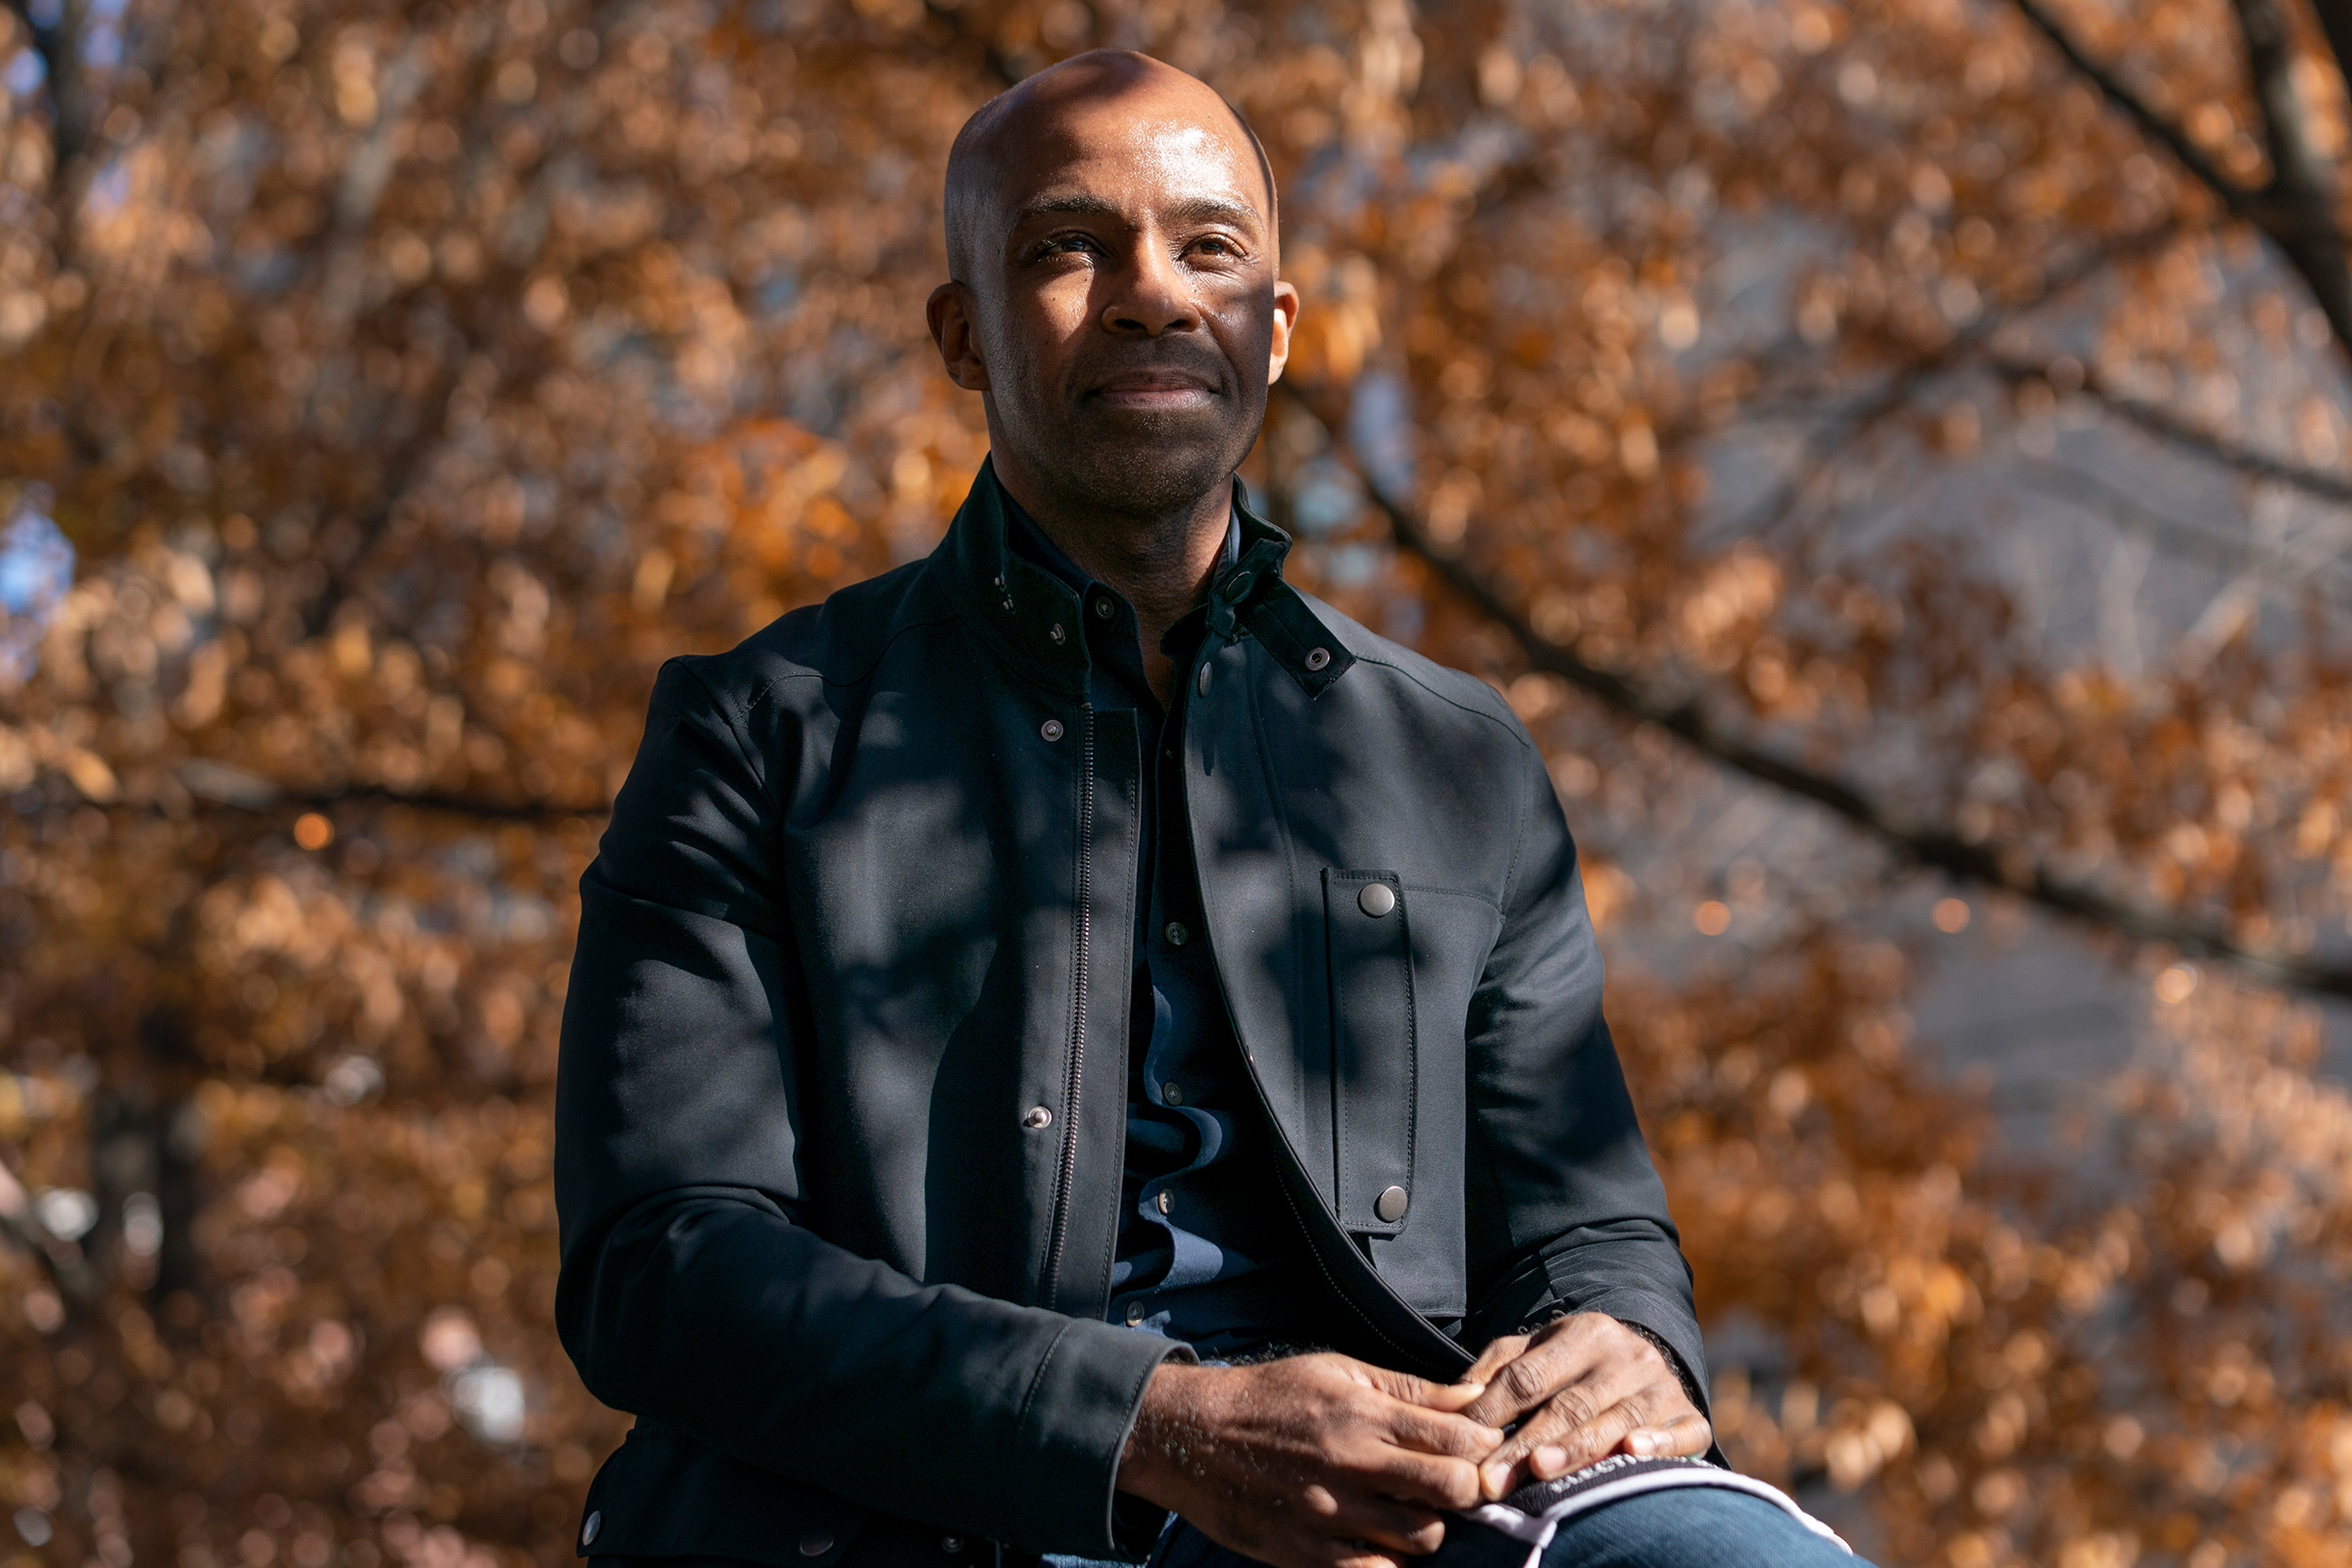 Alphonso David on Dec. 19, 2020. David was fired from his role as president of the powerful LGBTQ advocacy group Human Rights Campaign on Sept. 6.